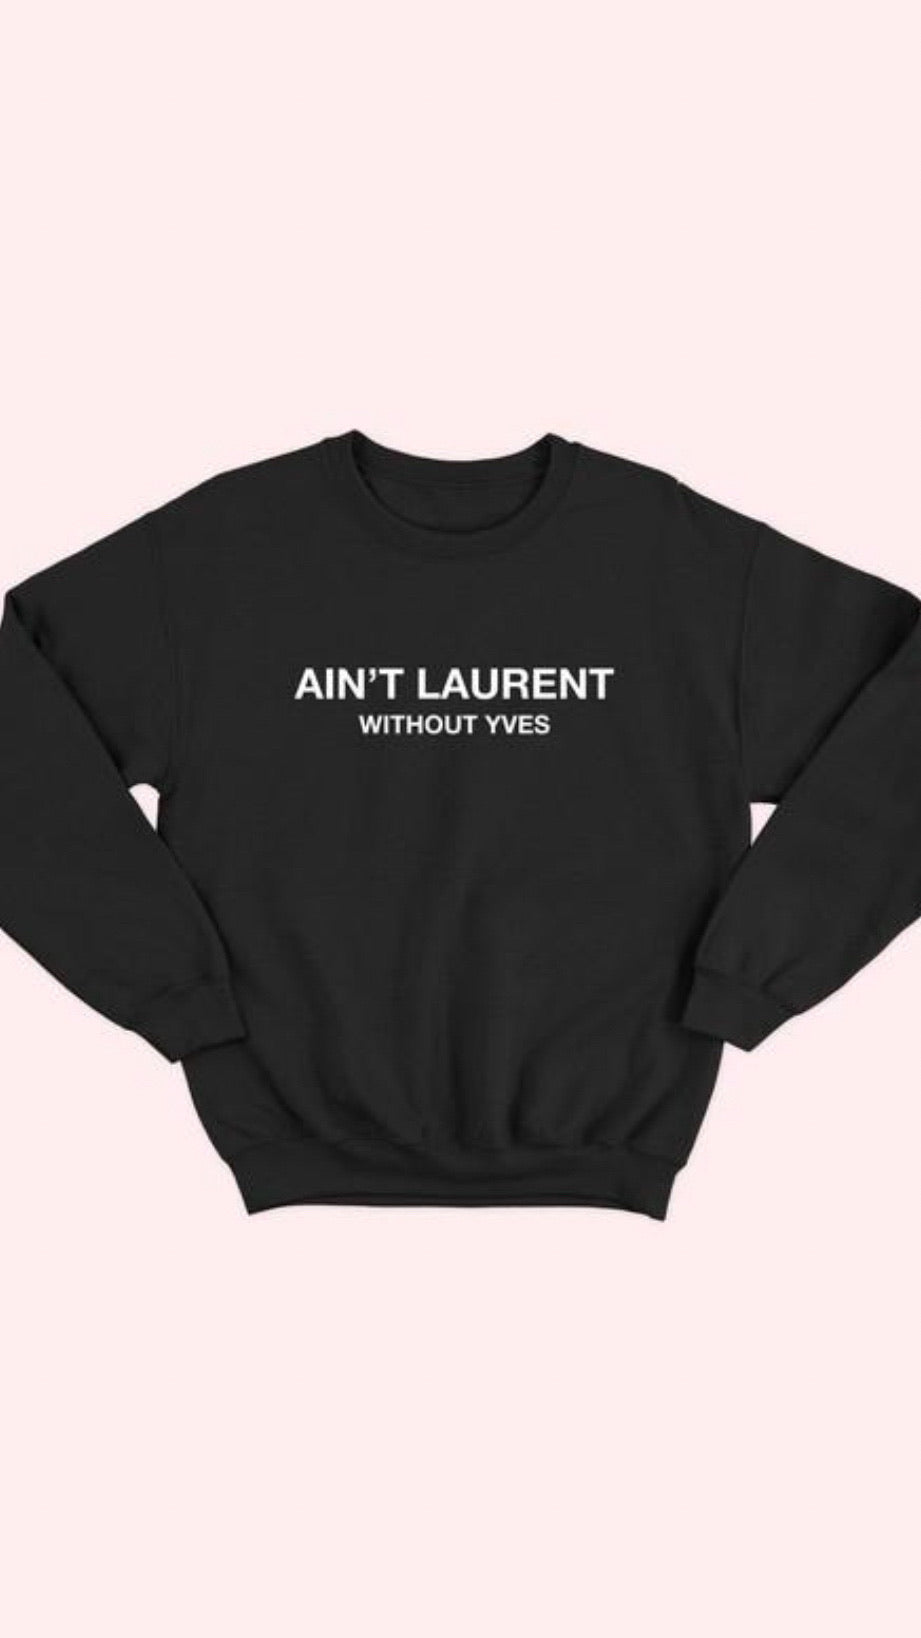 Aint Laurent Sweatshirt